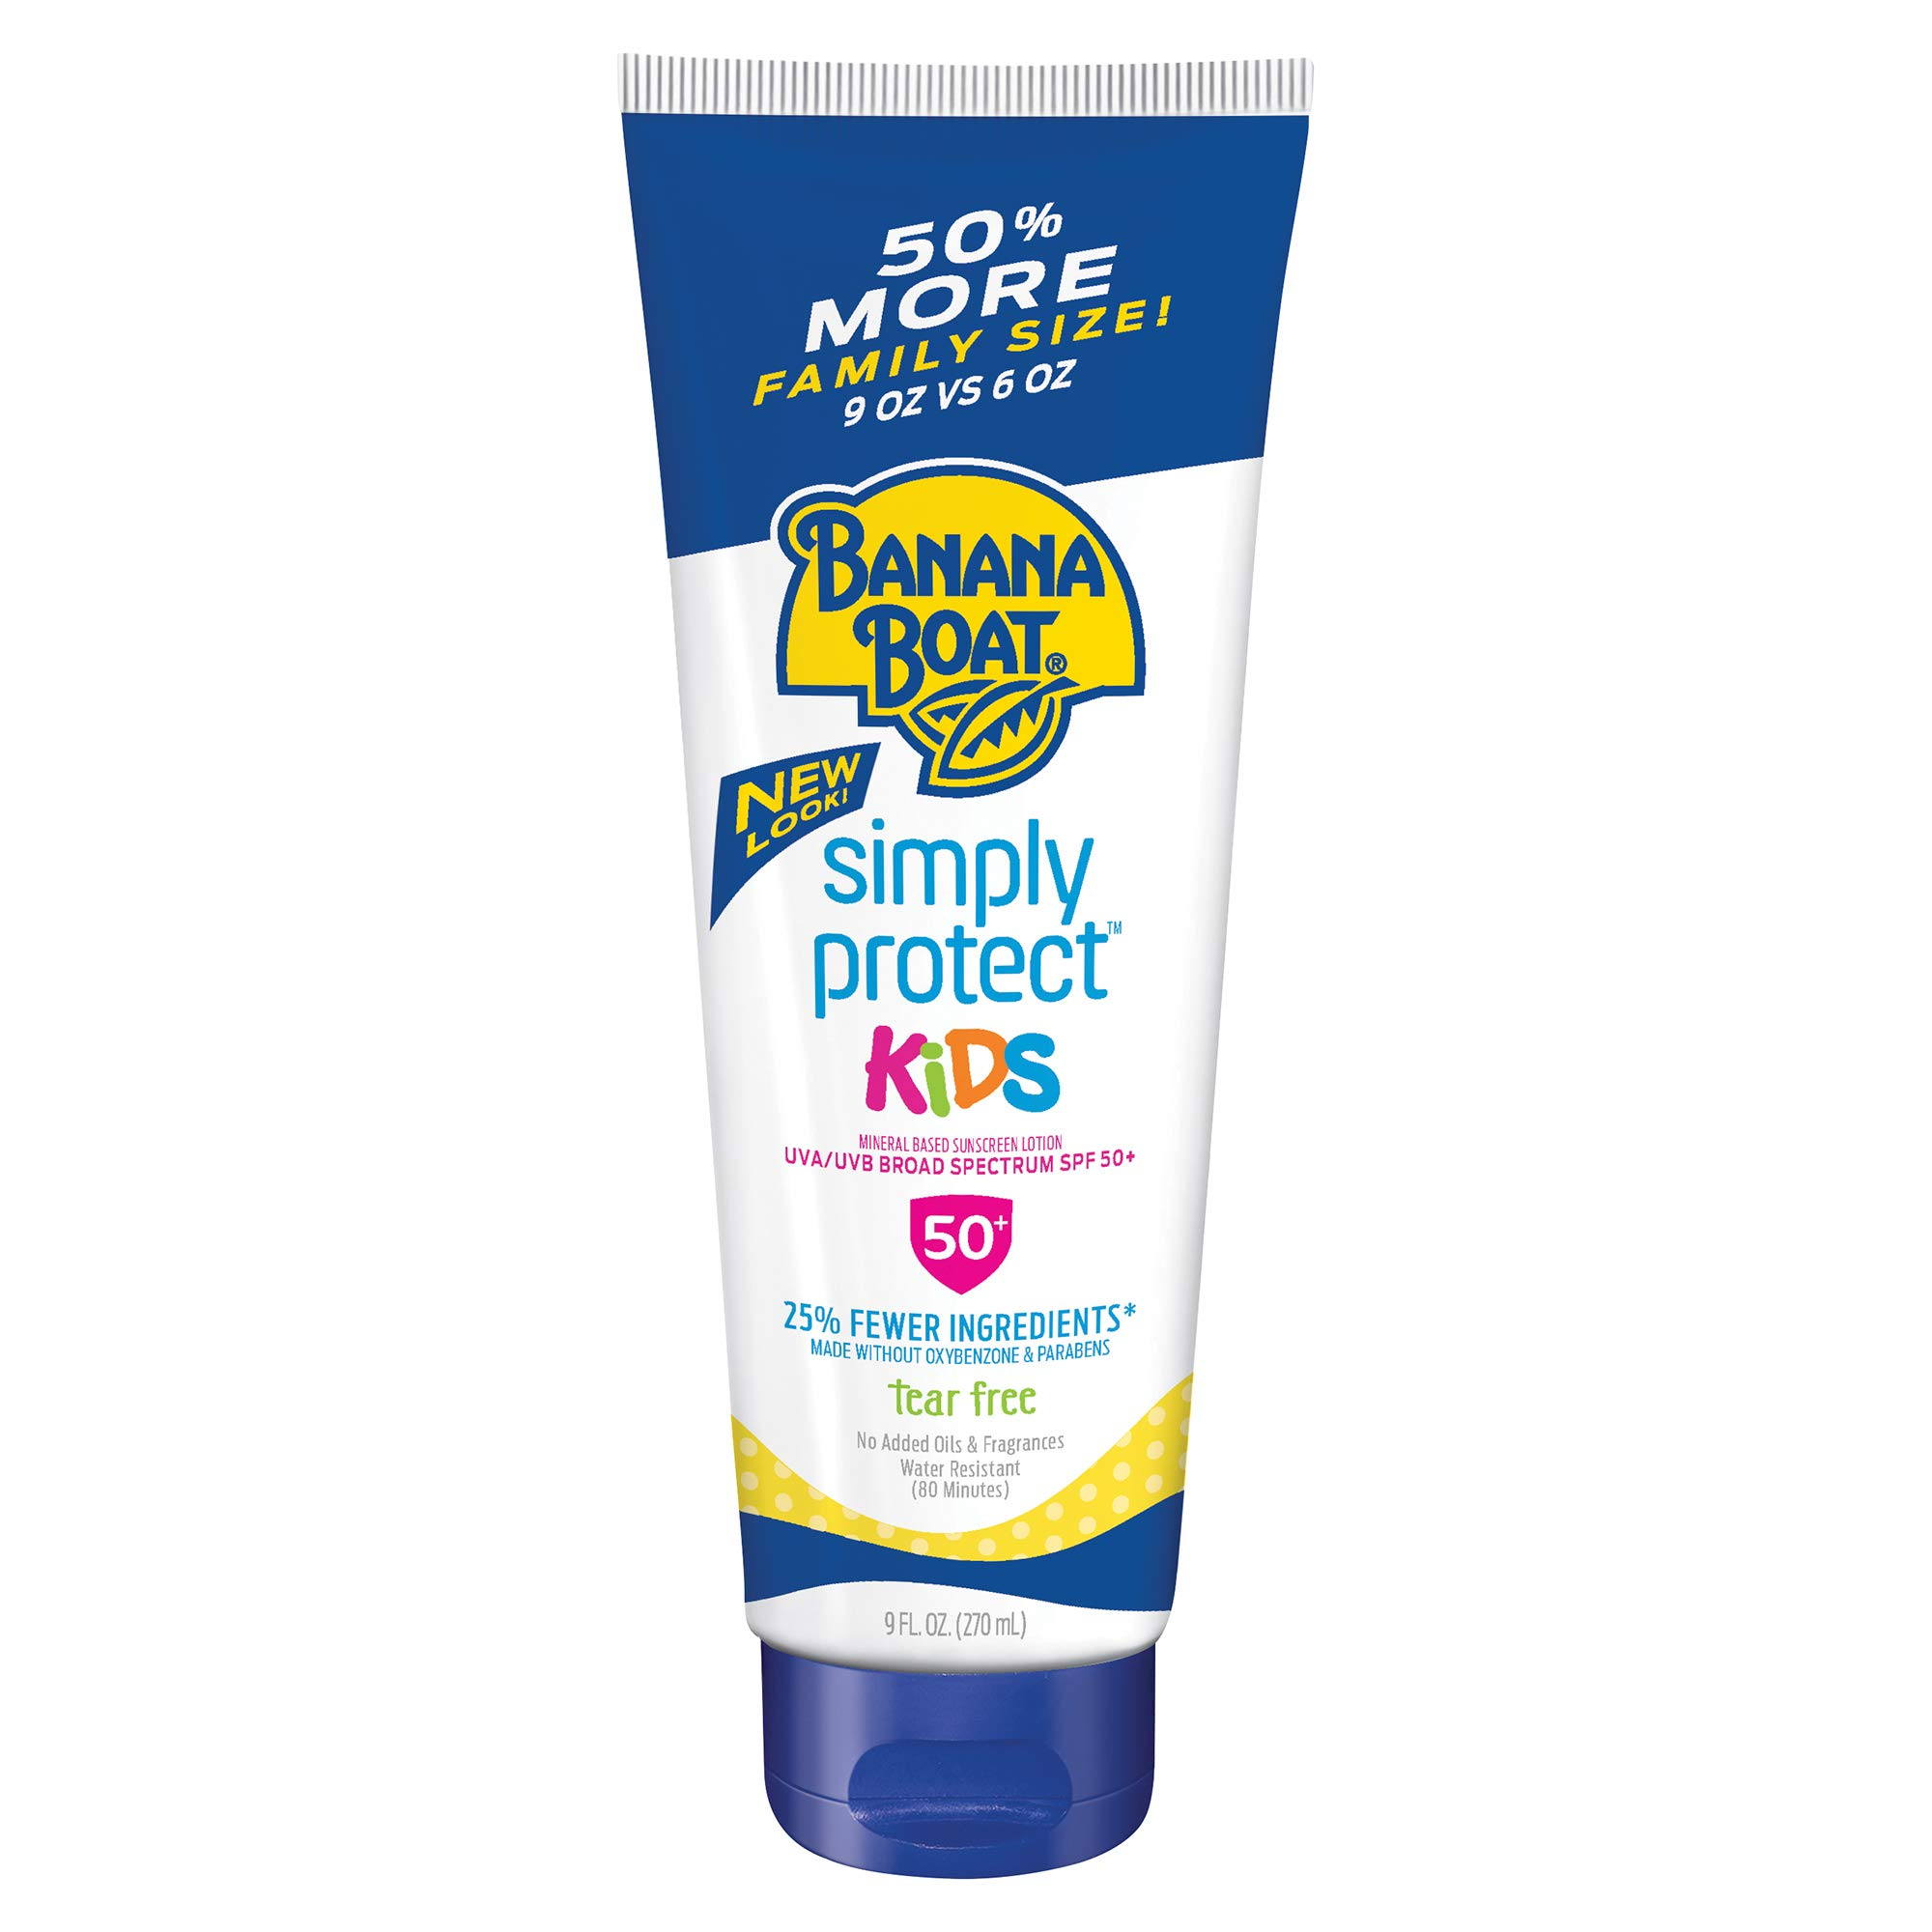 Banana Boat Simply Protect Tear Free, Reef Friendly Sunscreen Lotion Spray for Kids, Broad Spectrum SPF 50, 25% Fewer Ingredients, 9 Ounces